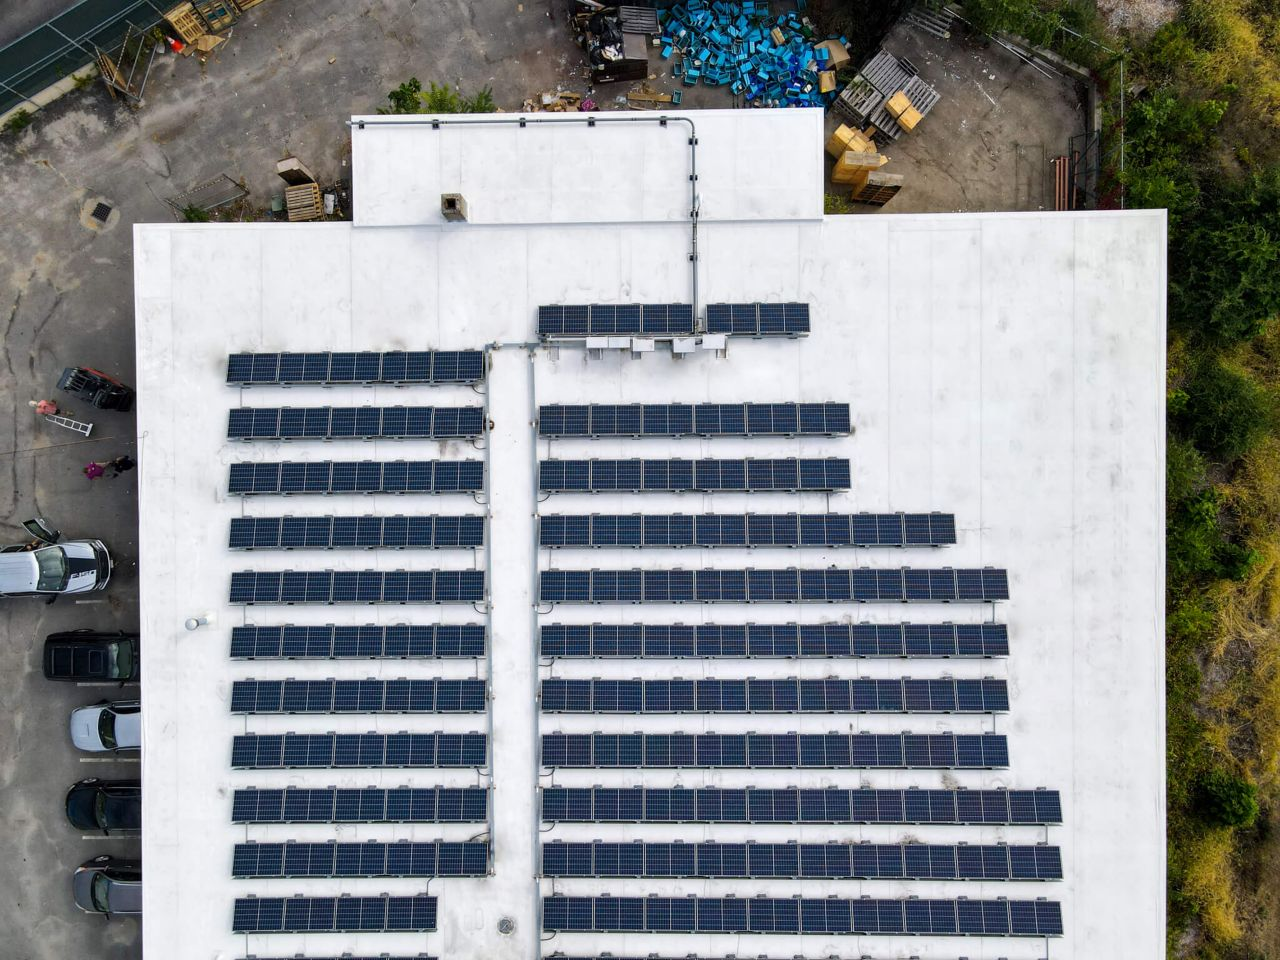 Ariel view of a white roof with solar panels